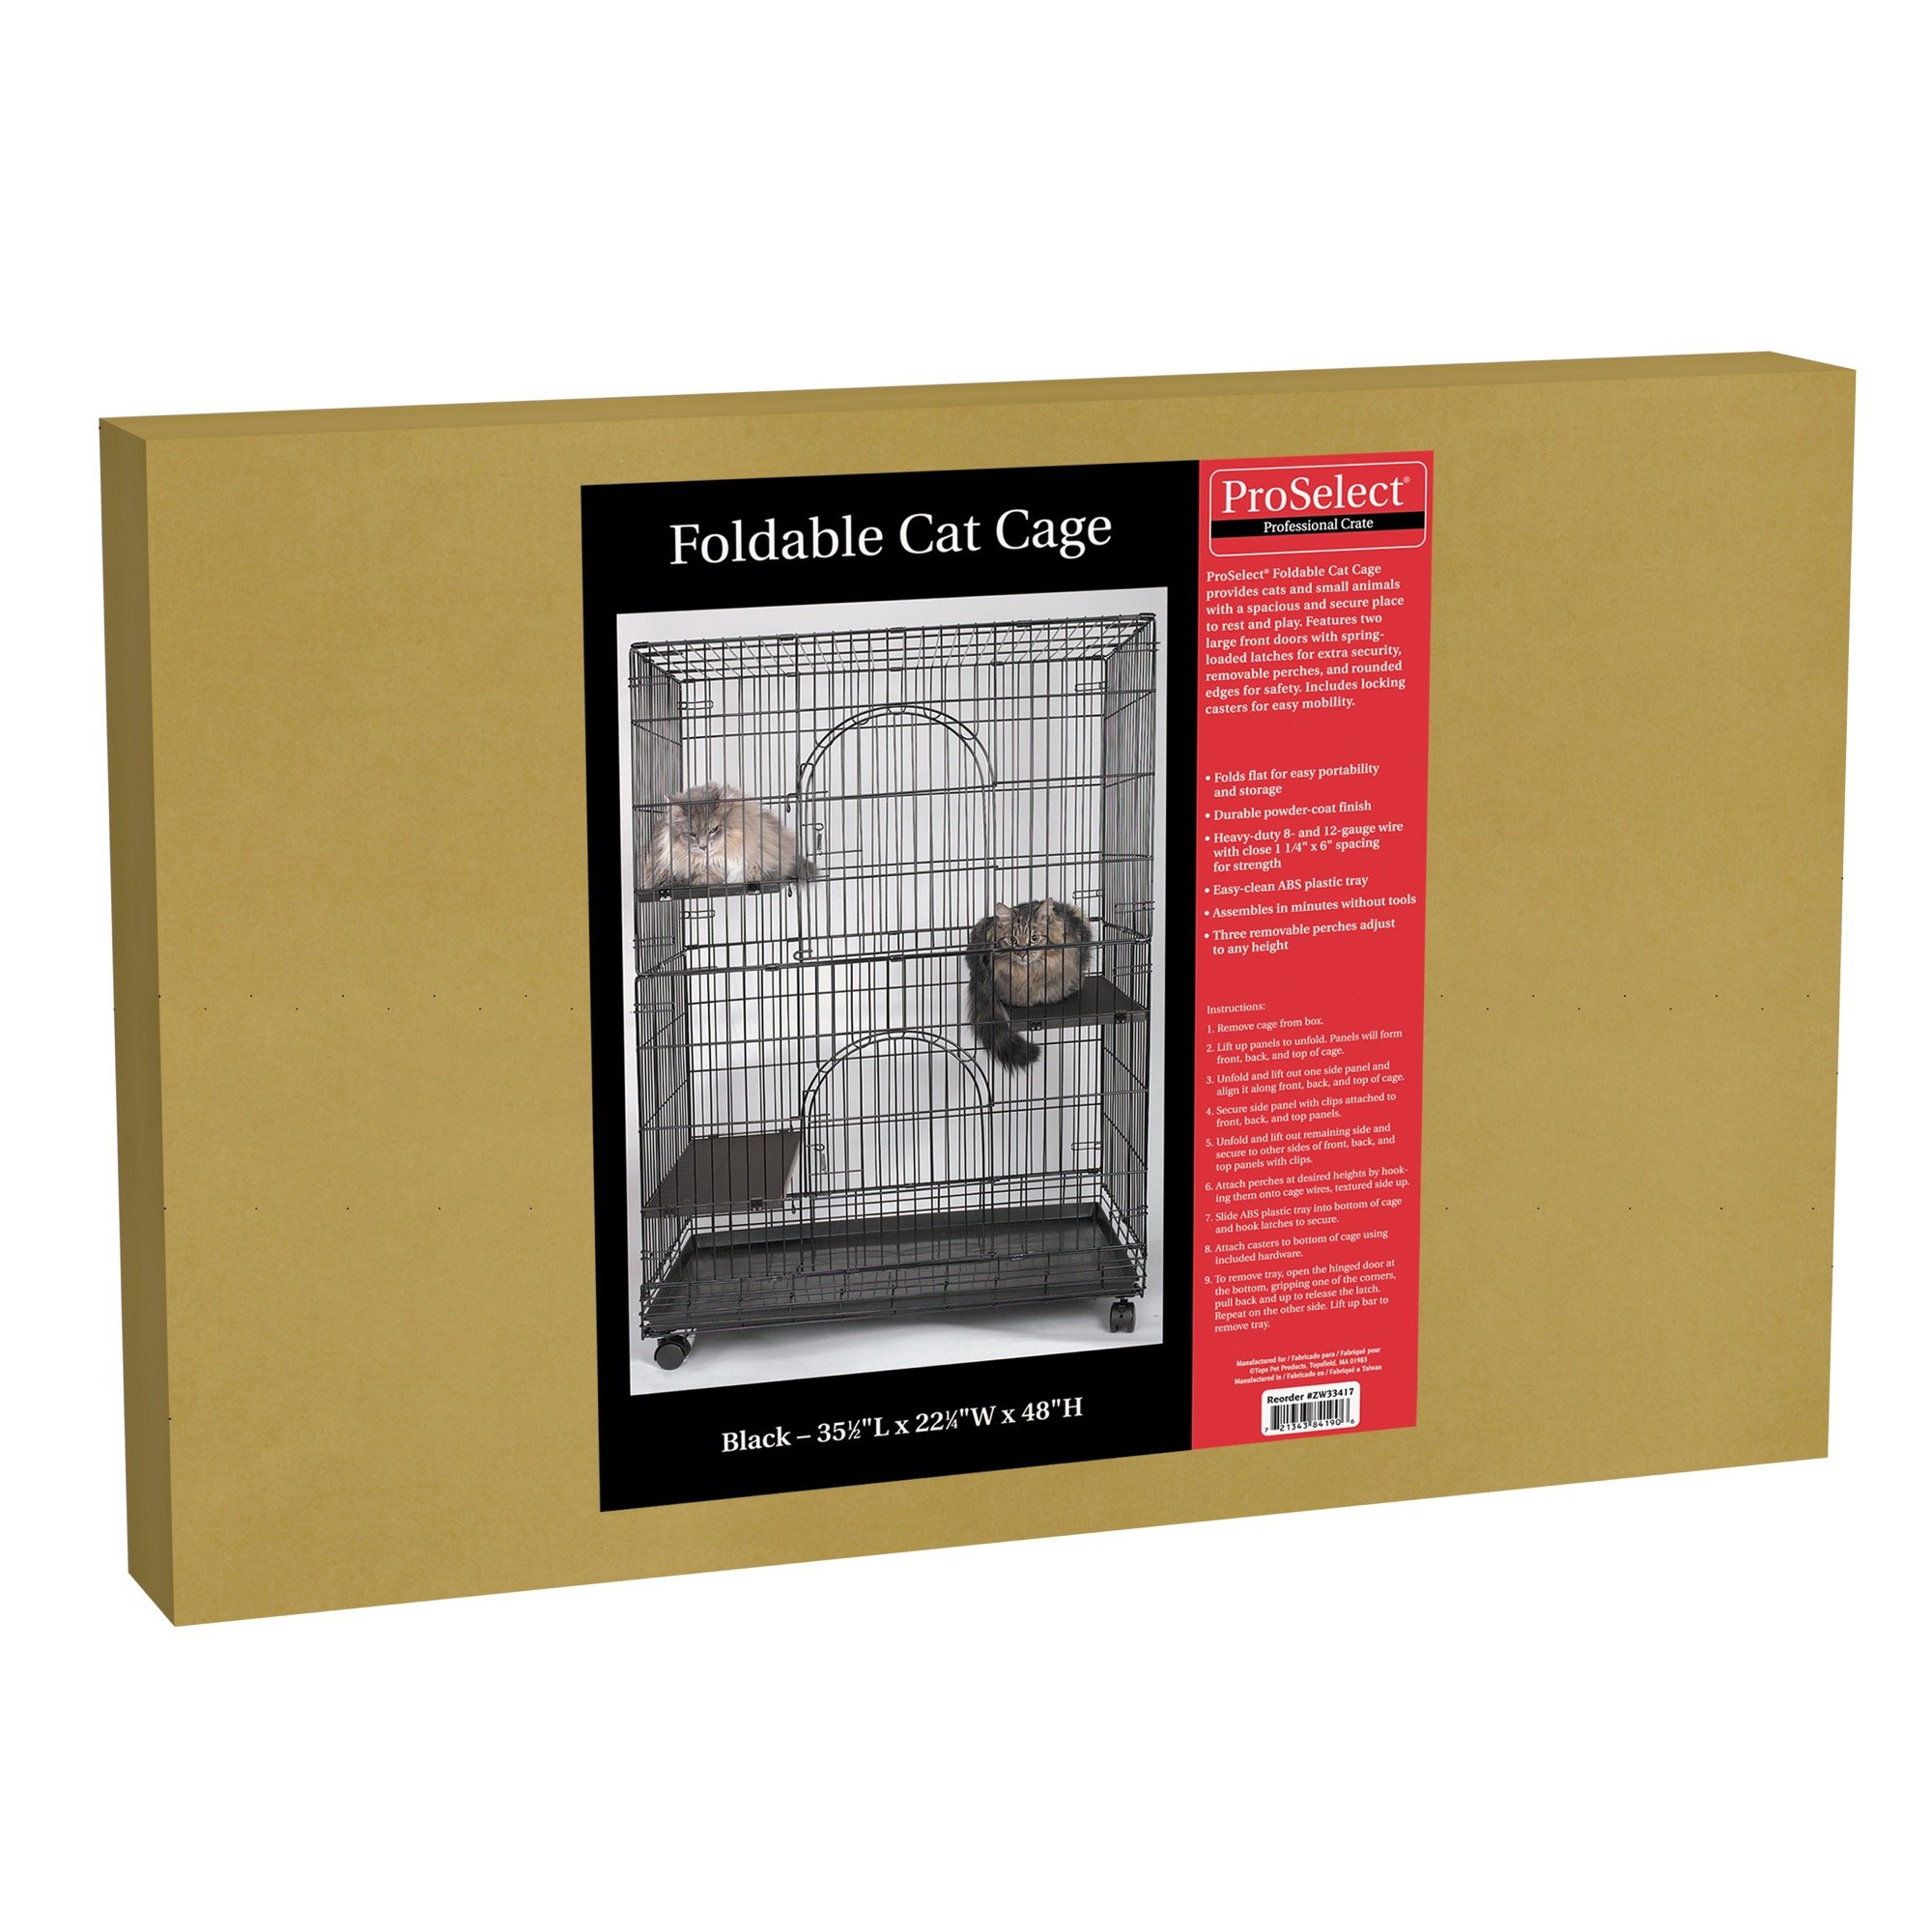 ProSelect Foldable Cat Cages 48'' High-Black by Pro Select